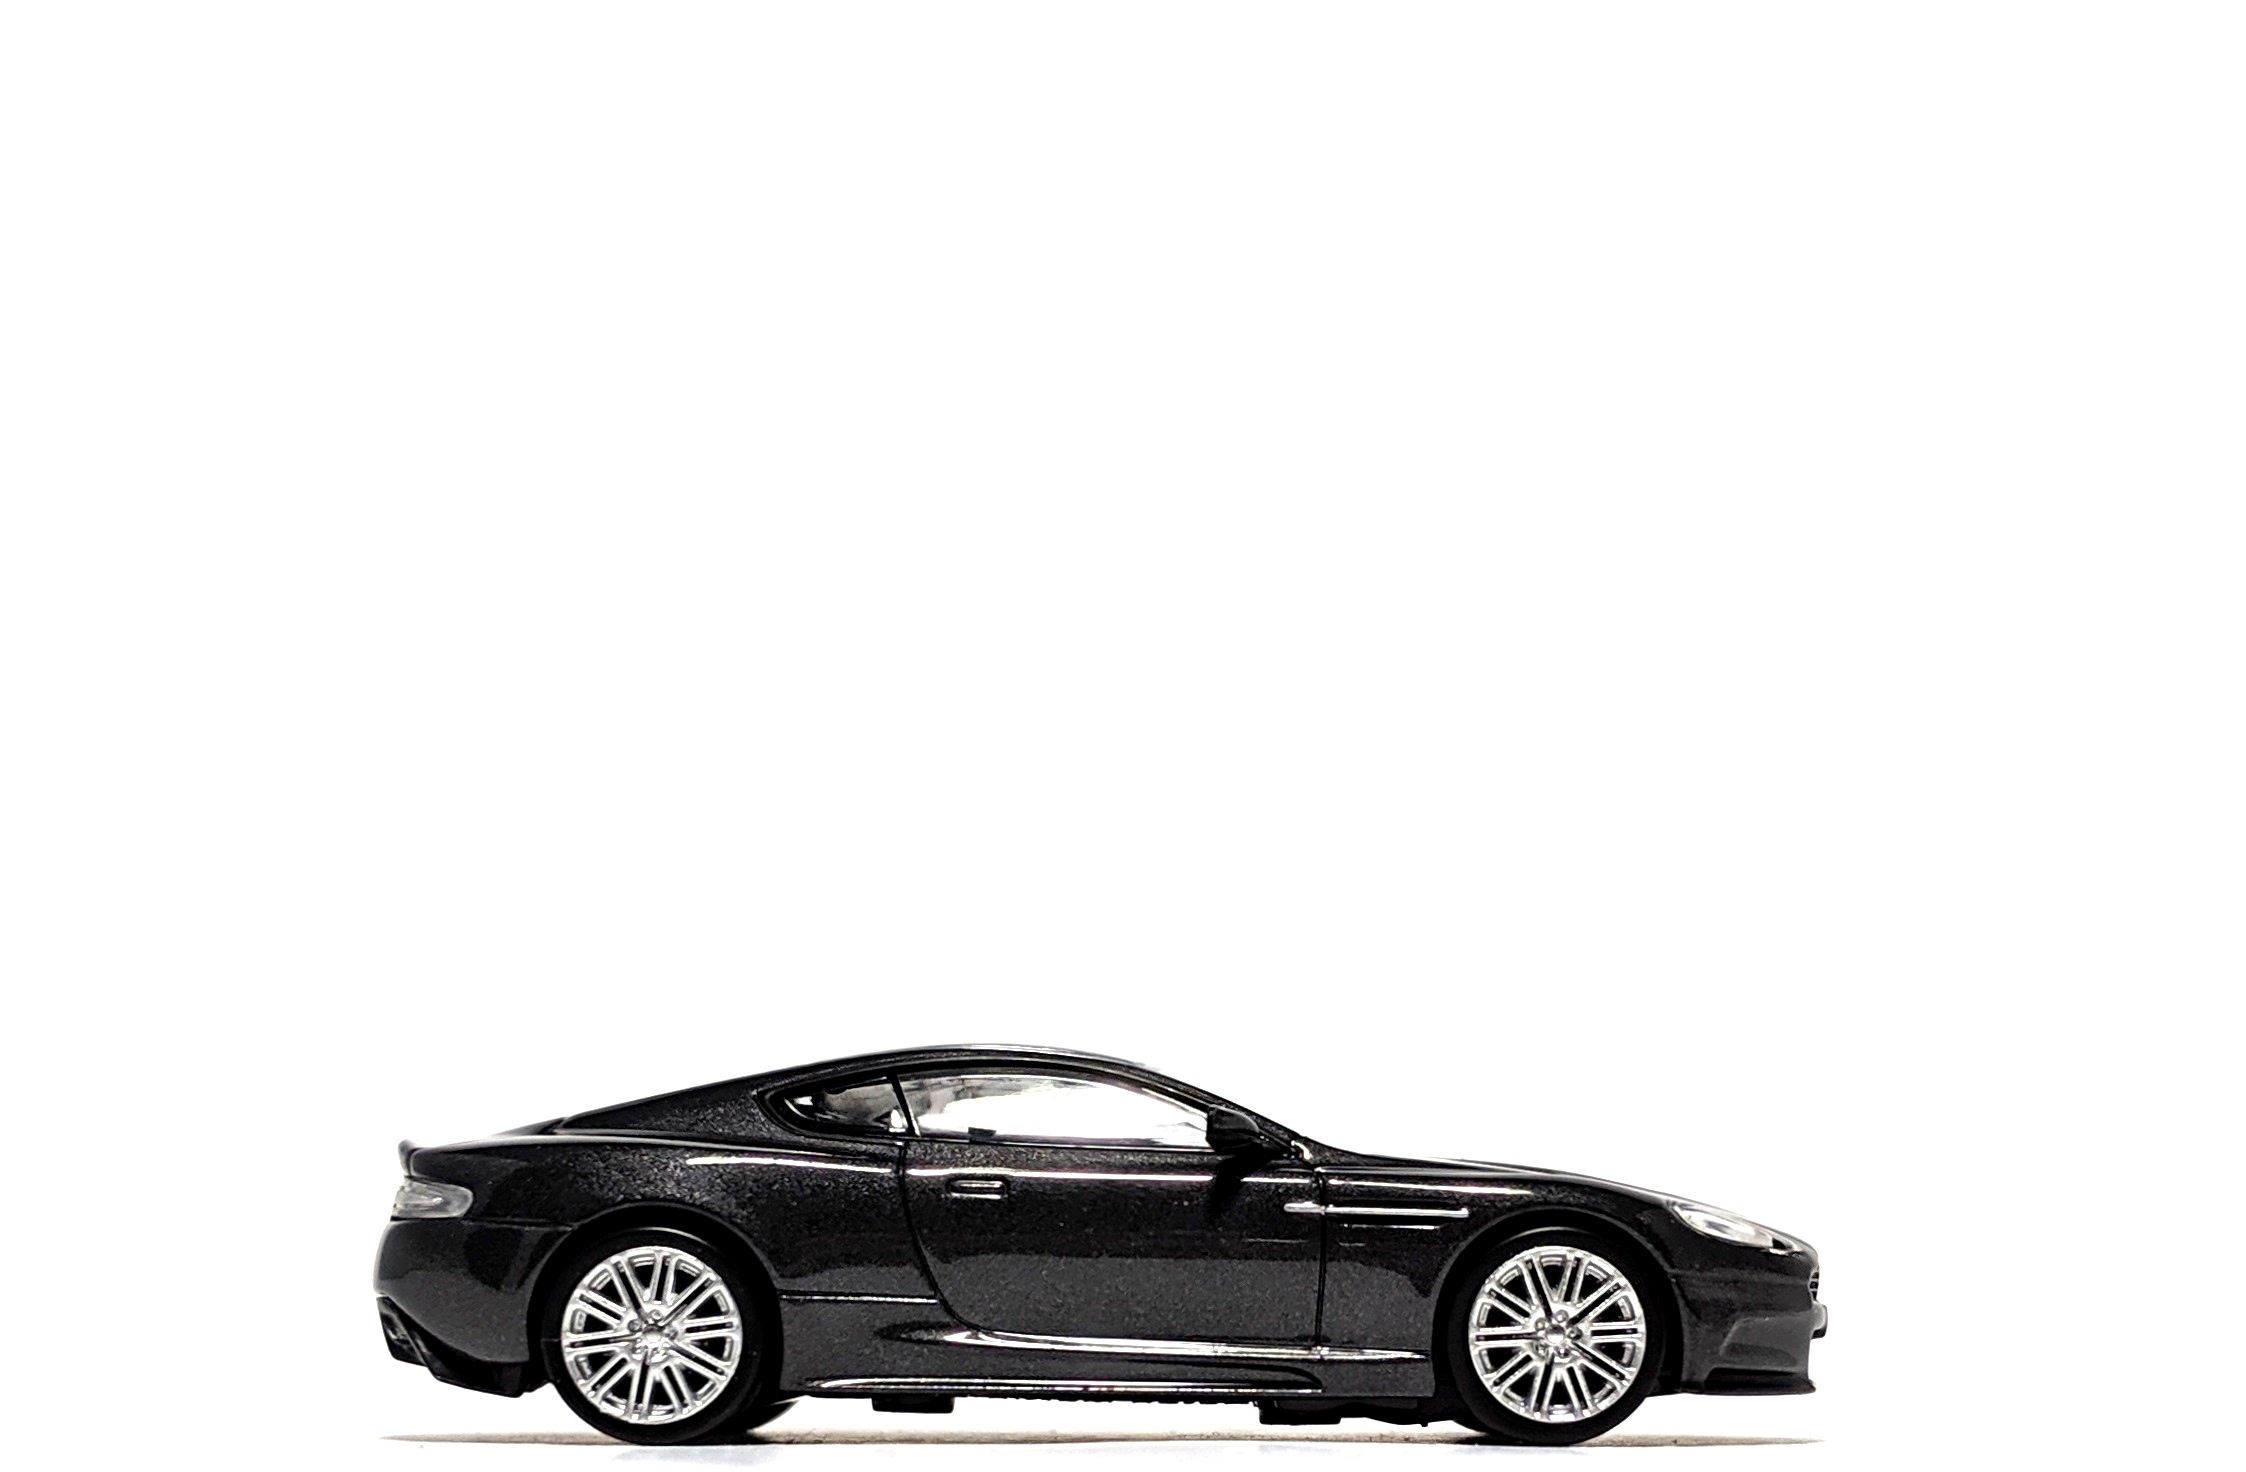 Aston Martin DBS (Casino Royale), by Minichamps